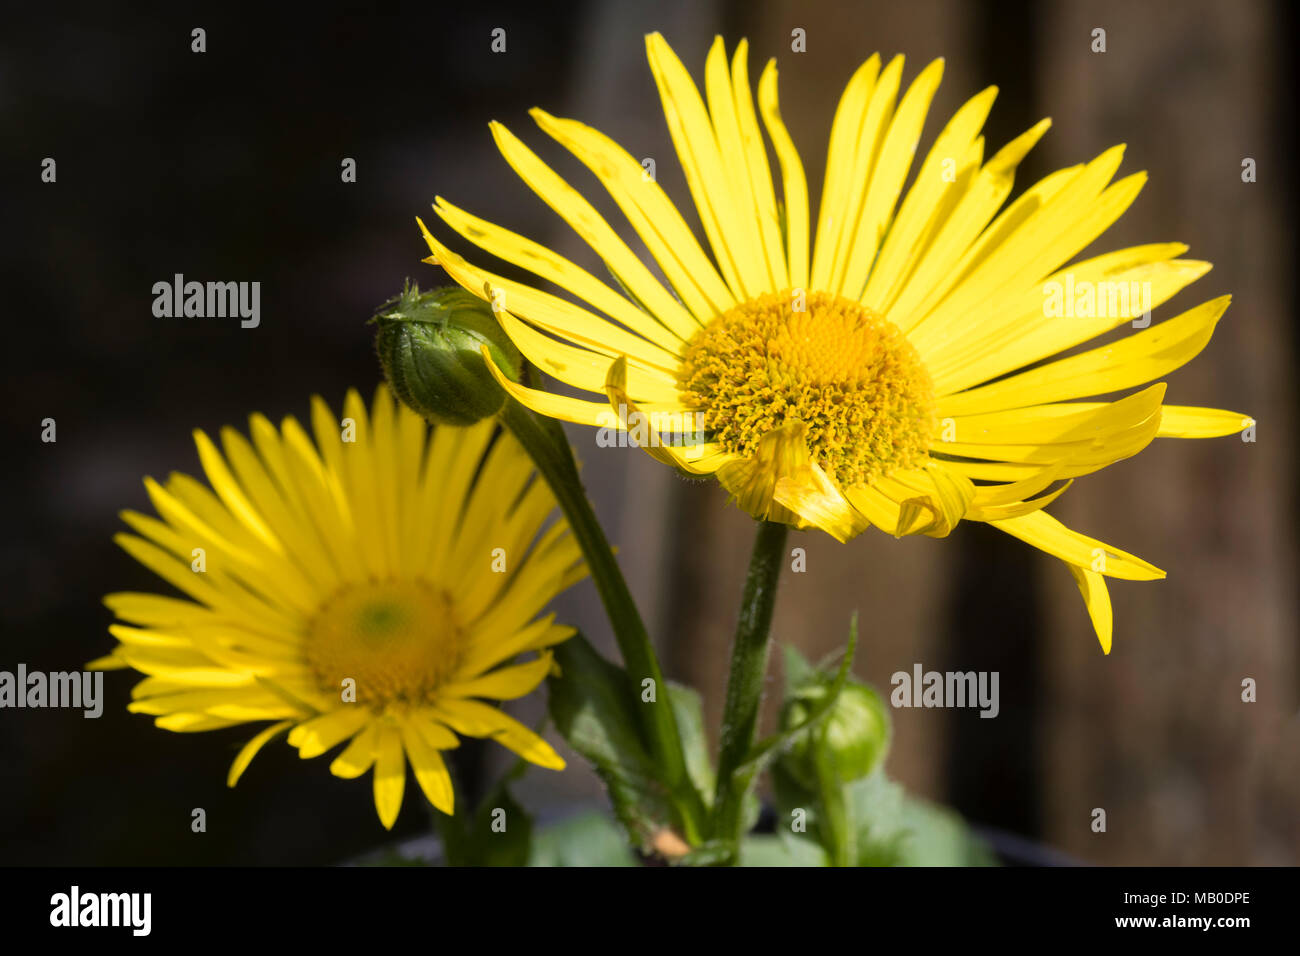 Bright Yellow Daisy Flowers Of The Shade Tolerant Spring Flowering